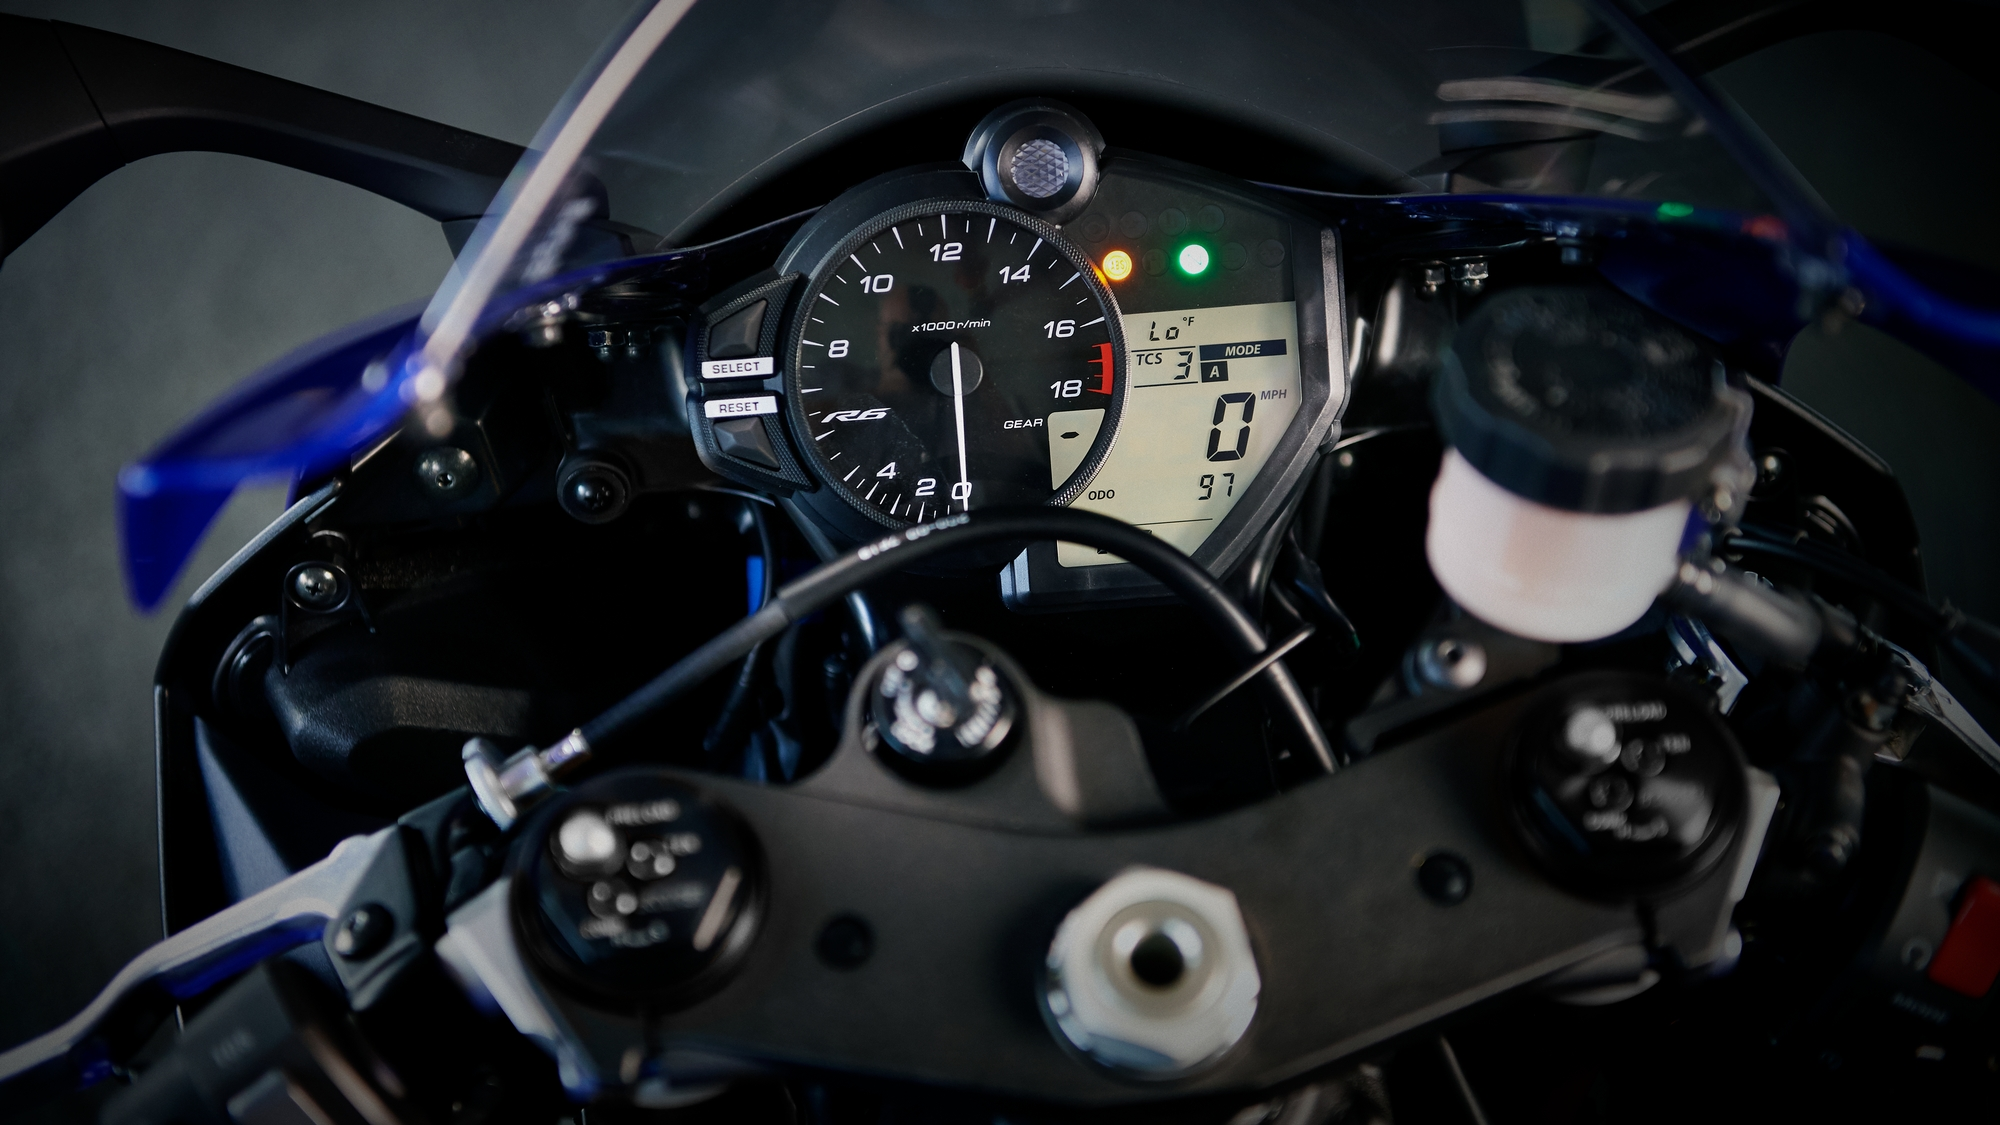 Yamaha YZF-R6 - Features and Technical Specifications